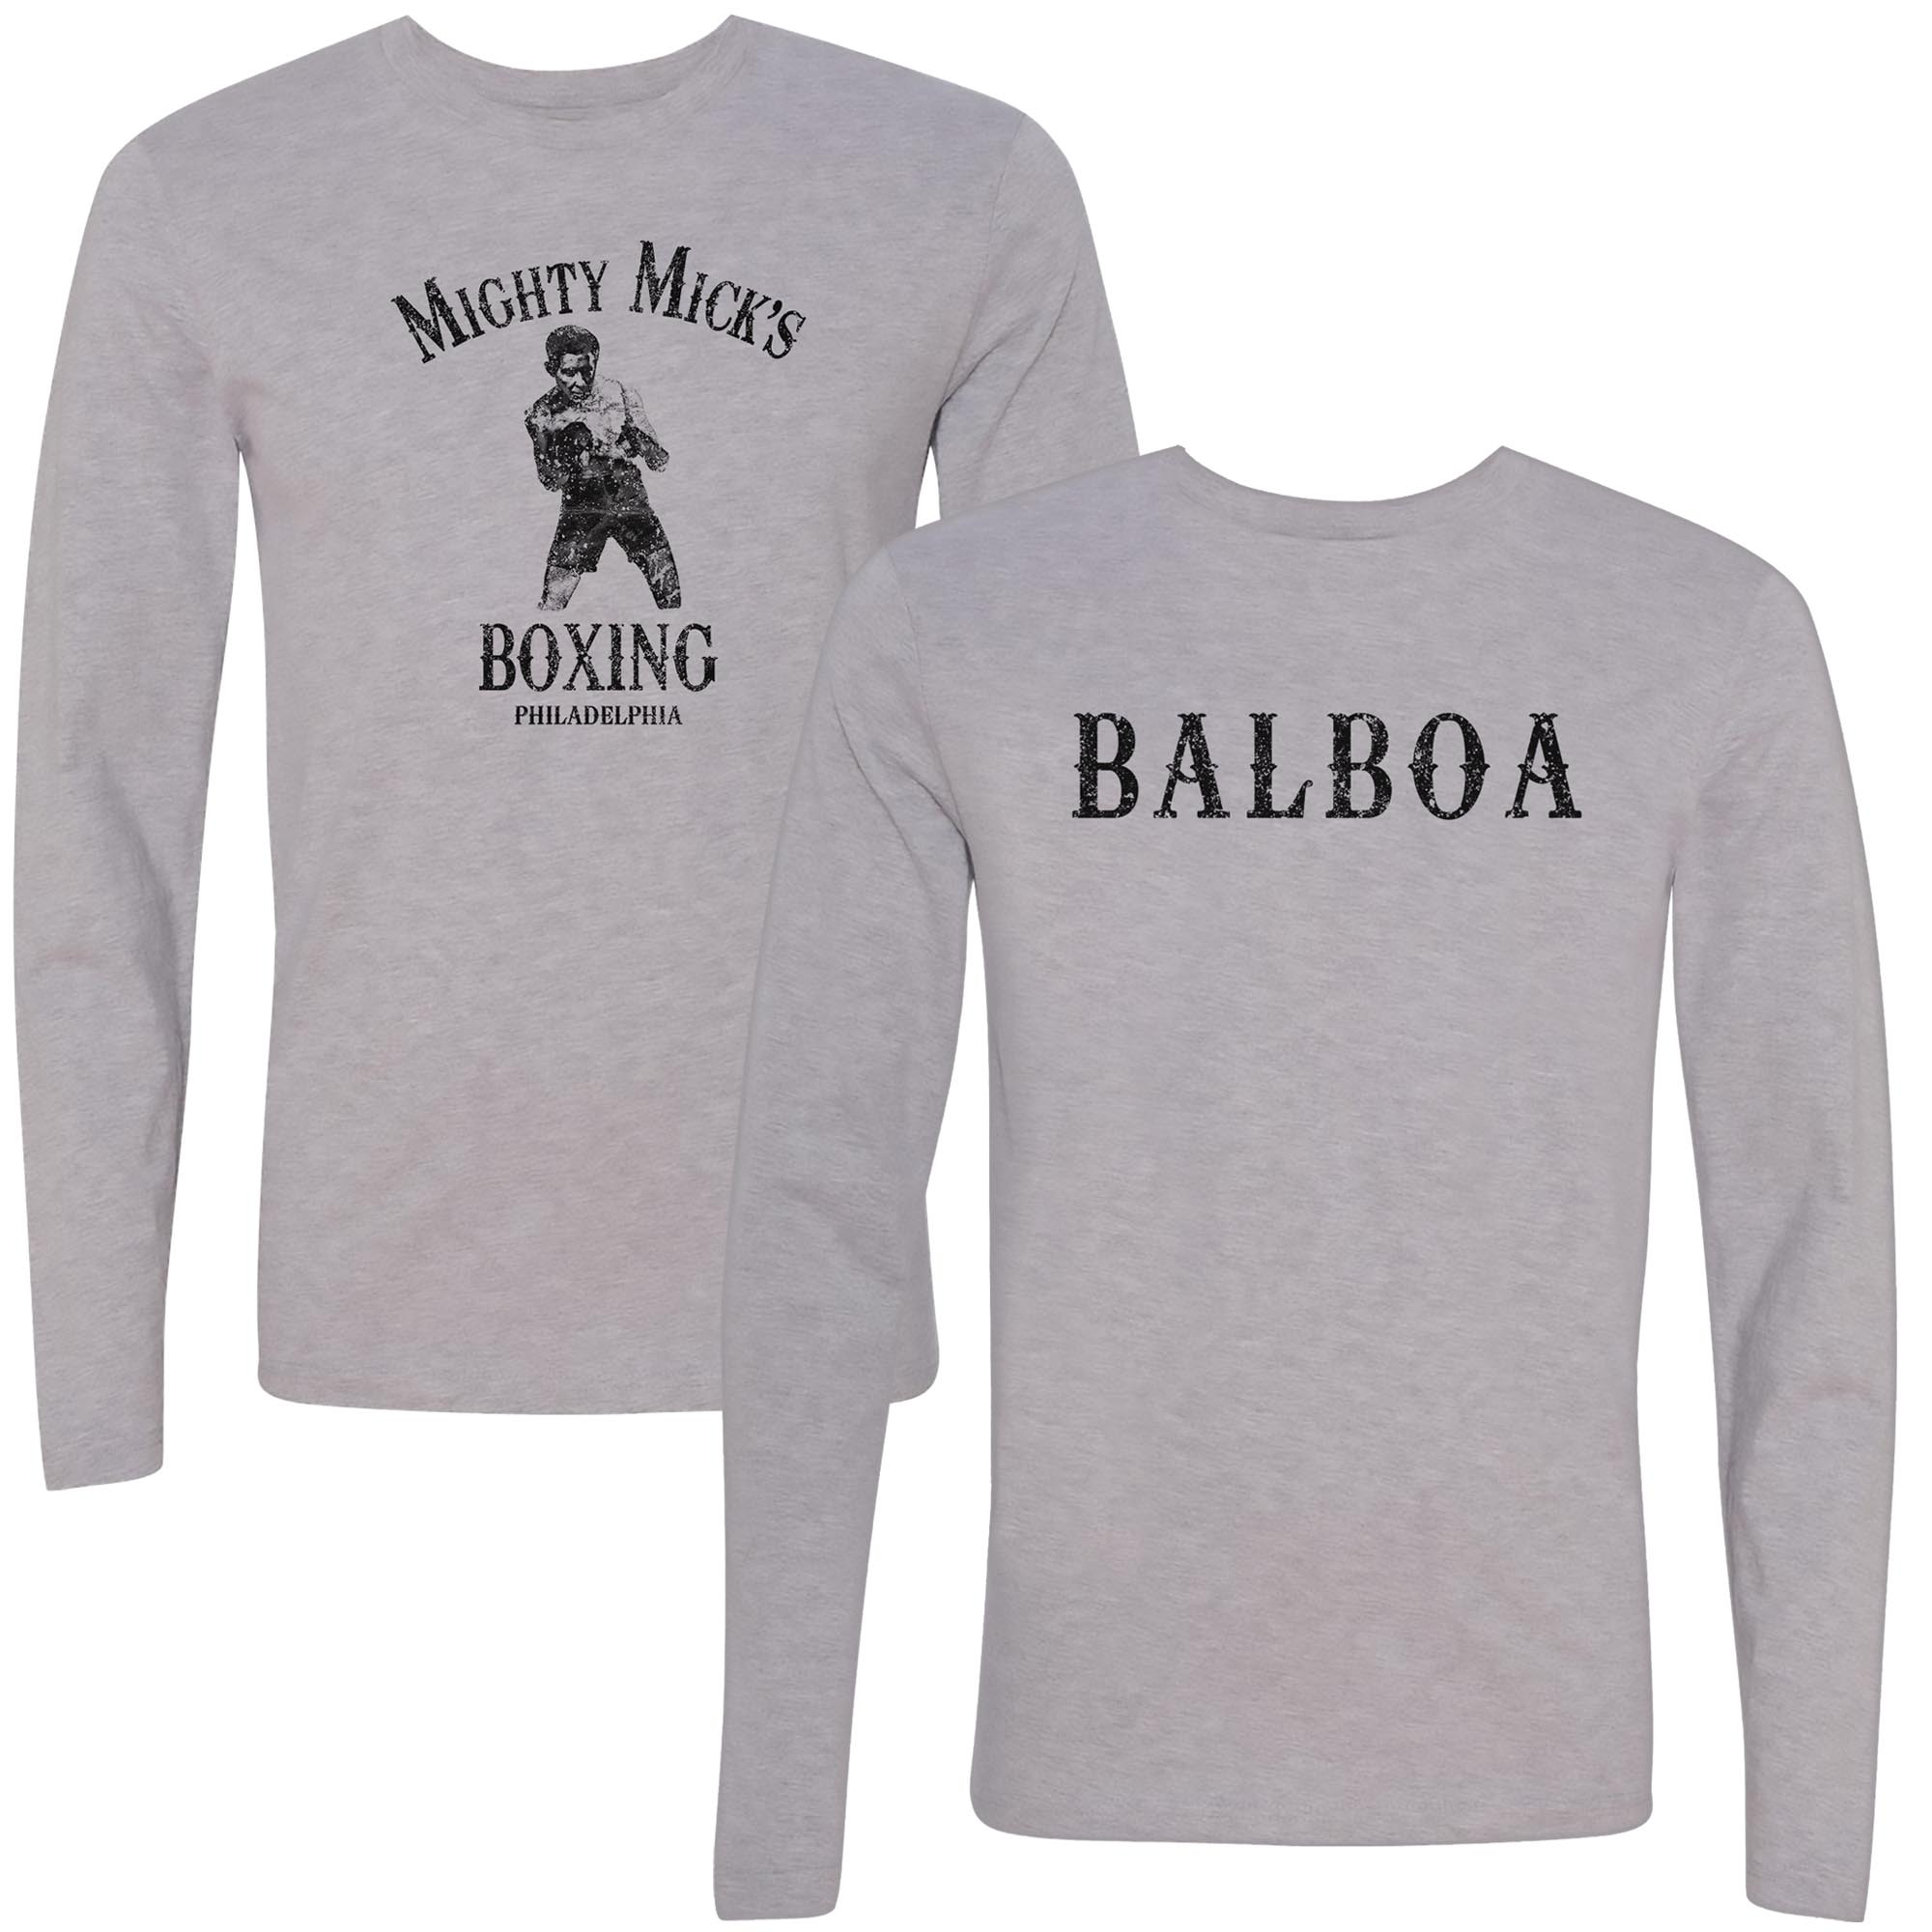 Mighty Mick's Boxing Longsleeve Balboa Tee